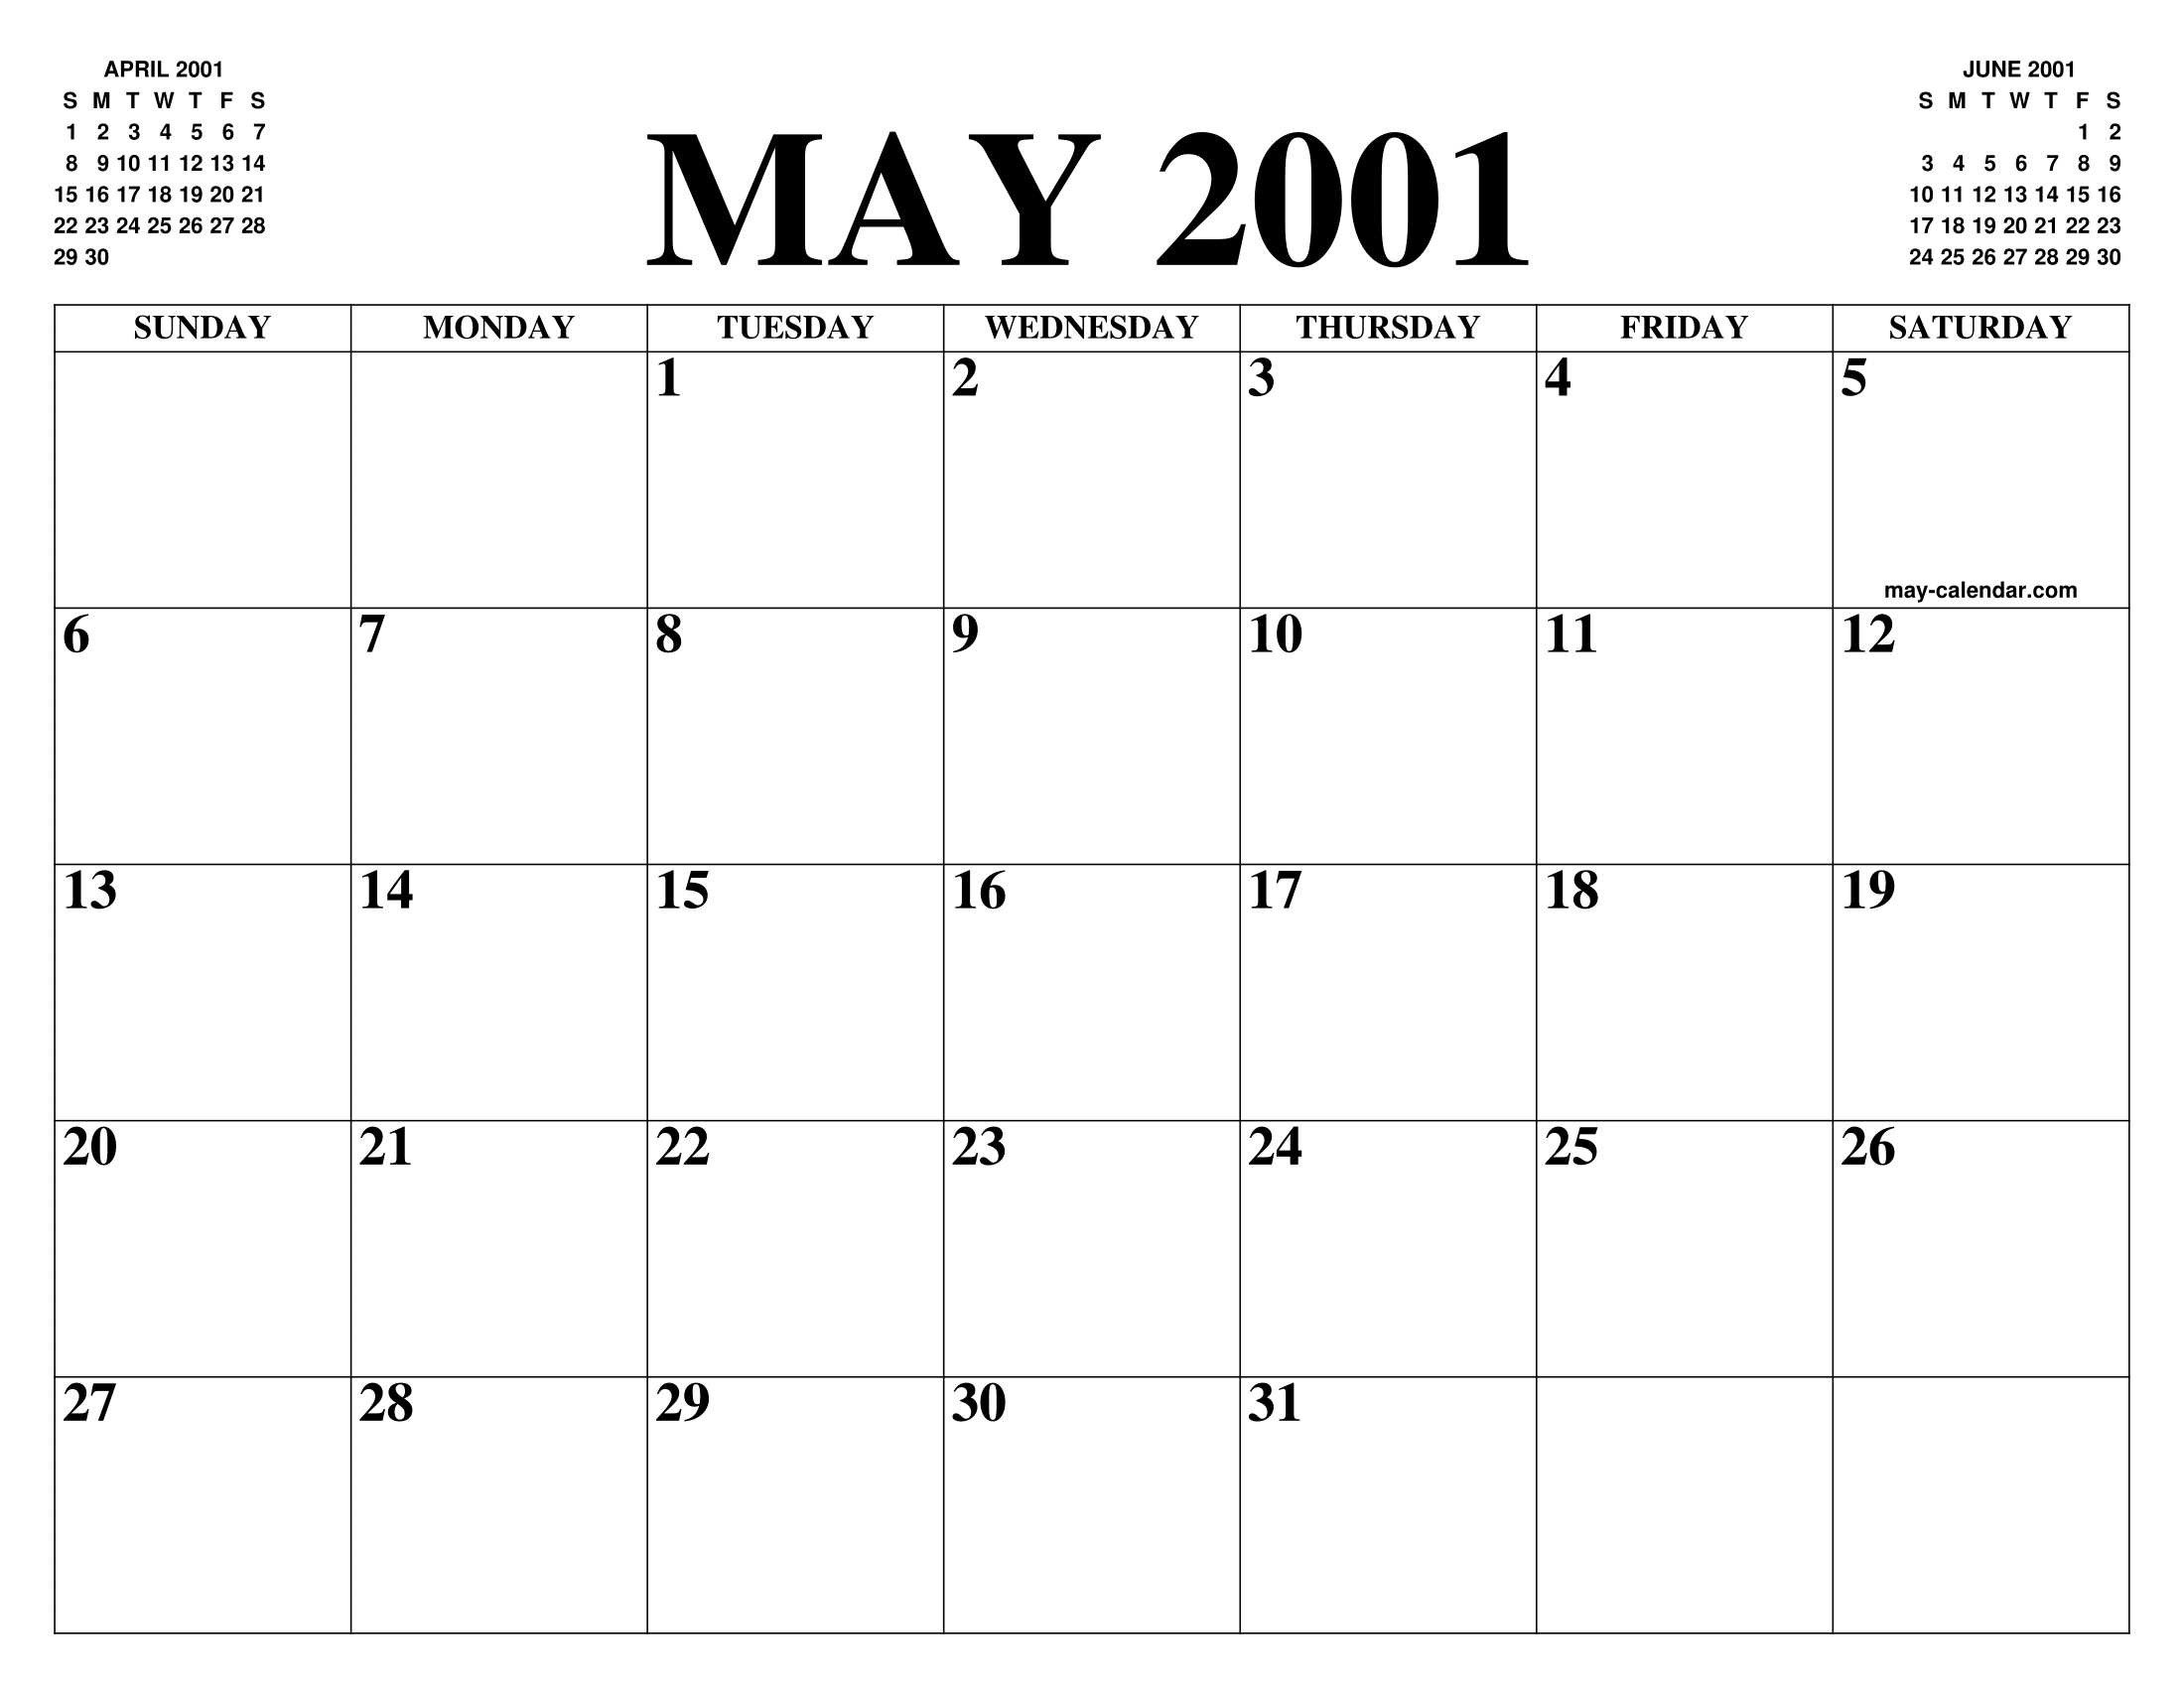 MAY 2001 CALENDAR OF THE MONTH: FREE PRINTABLE MAY ...